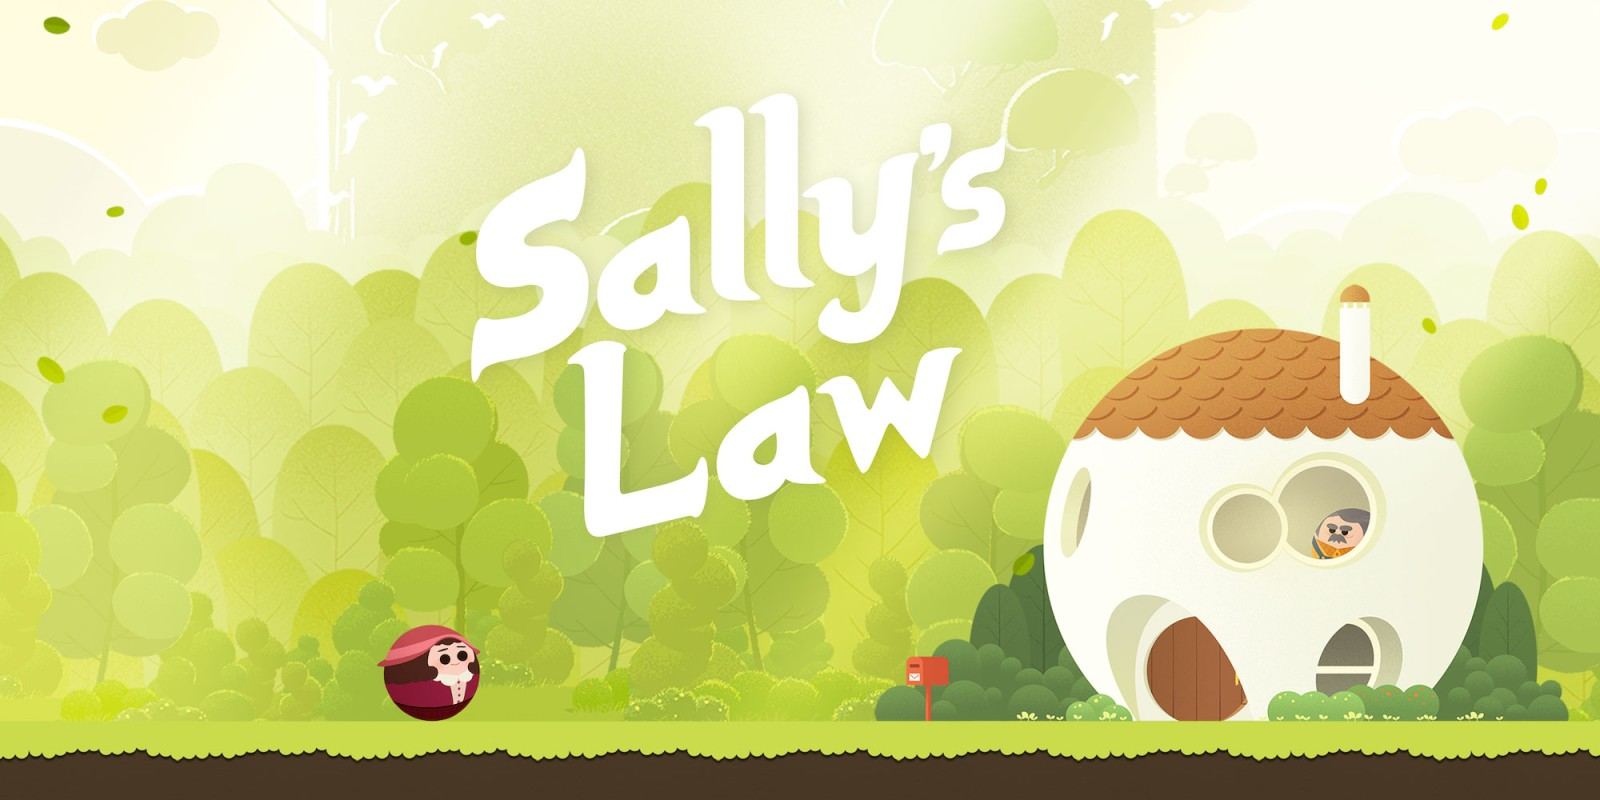 Sally's Law